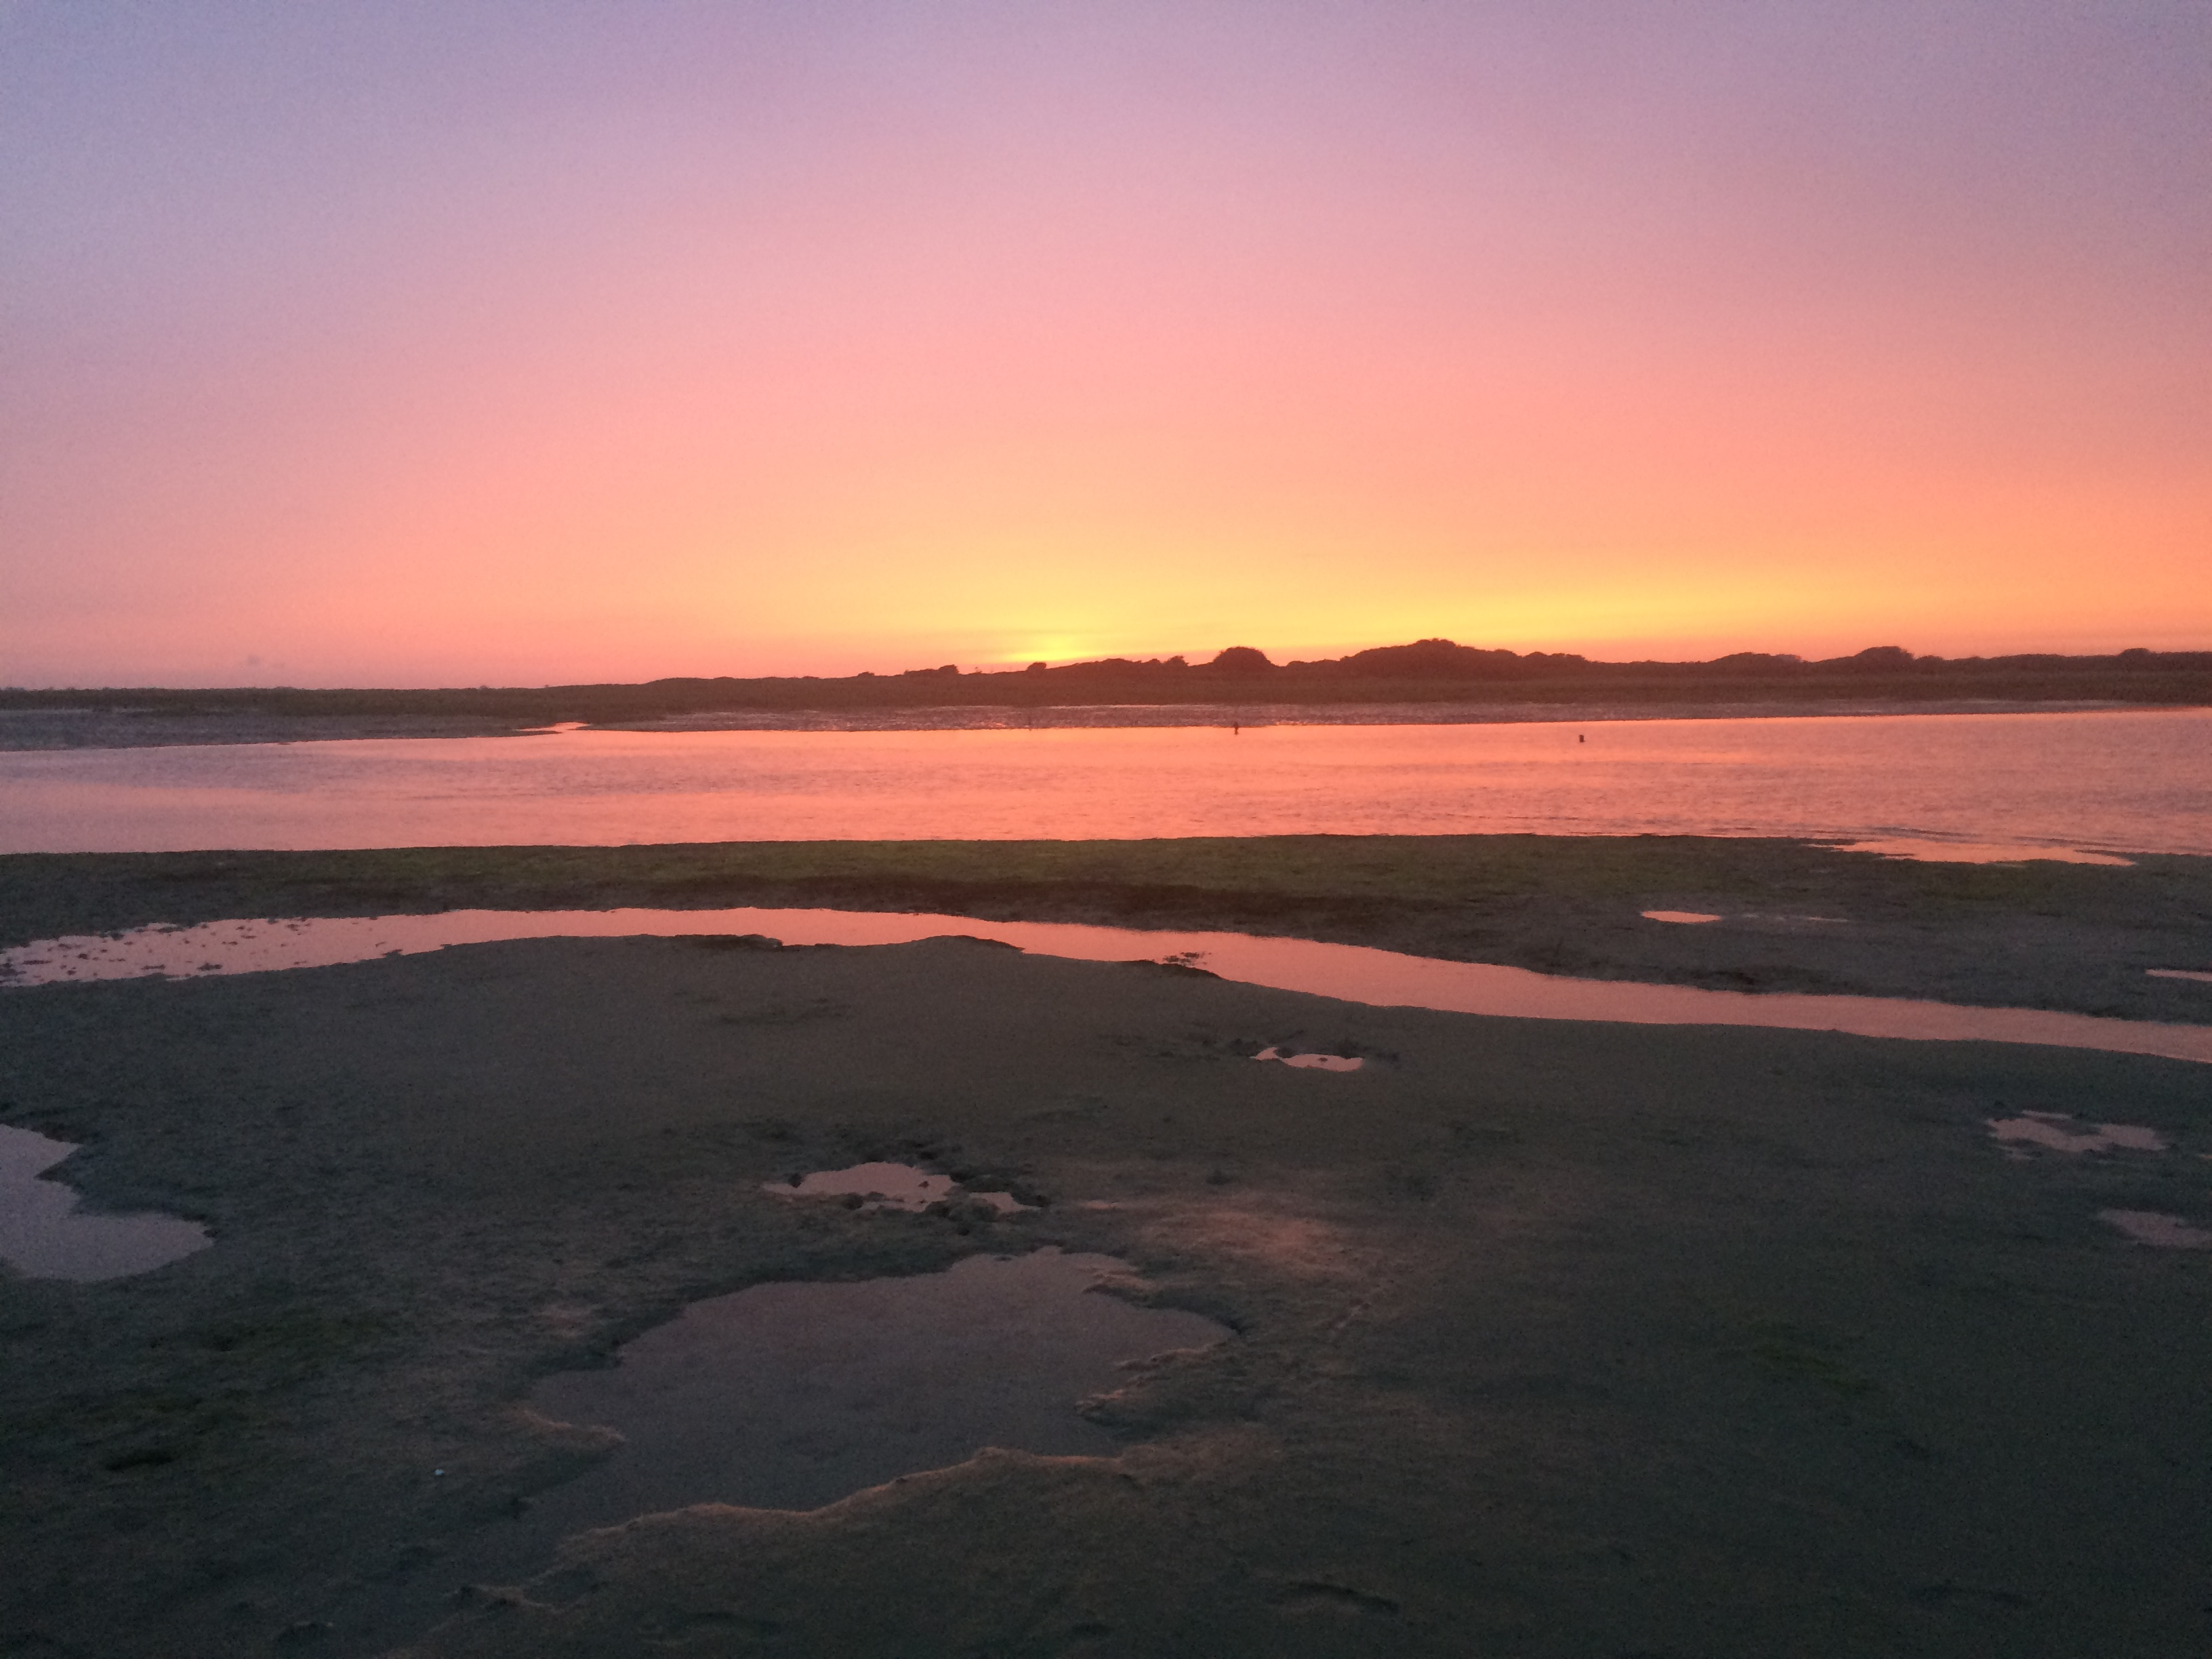 Sunset over Chichester Estuary